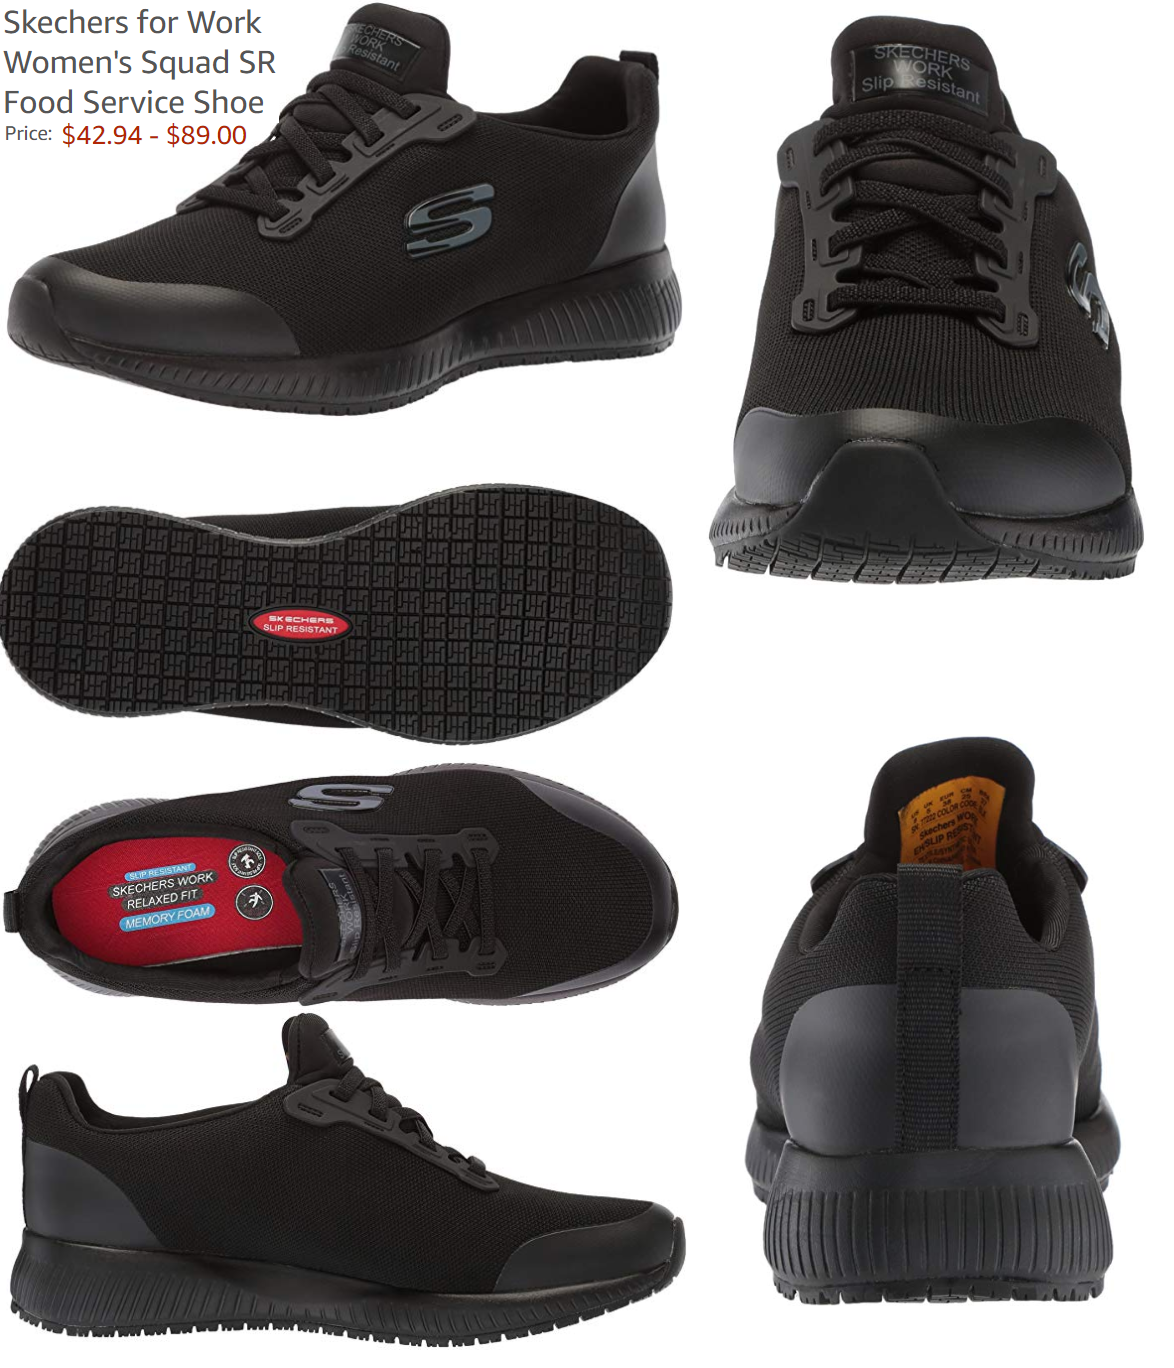 Misionero Día del Niño diario  Skechers for Work Women's Squad SR Food Service Shoe | Skechers women,  Skechers, Women